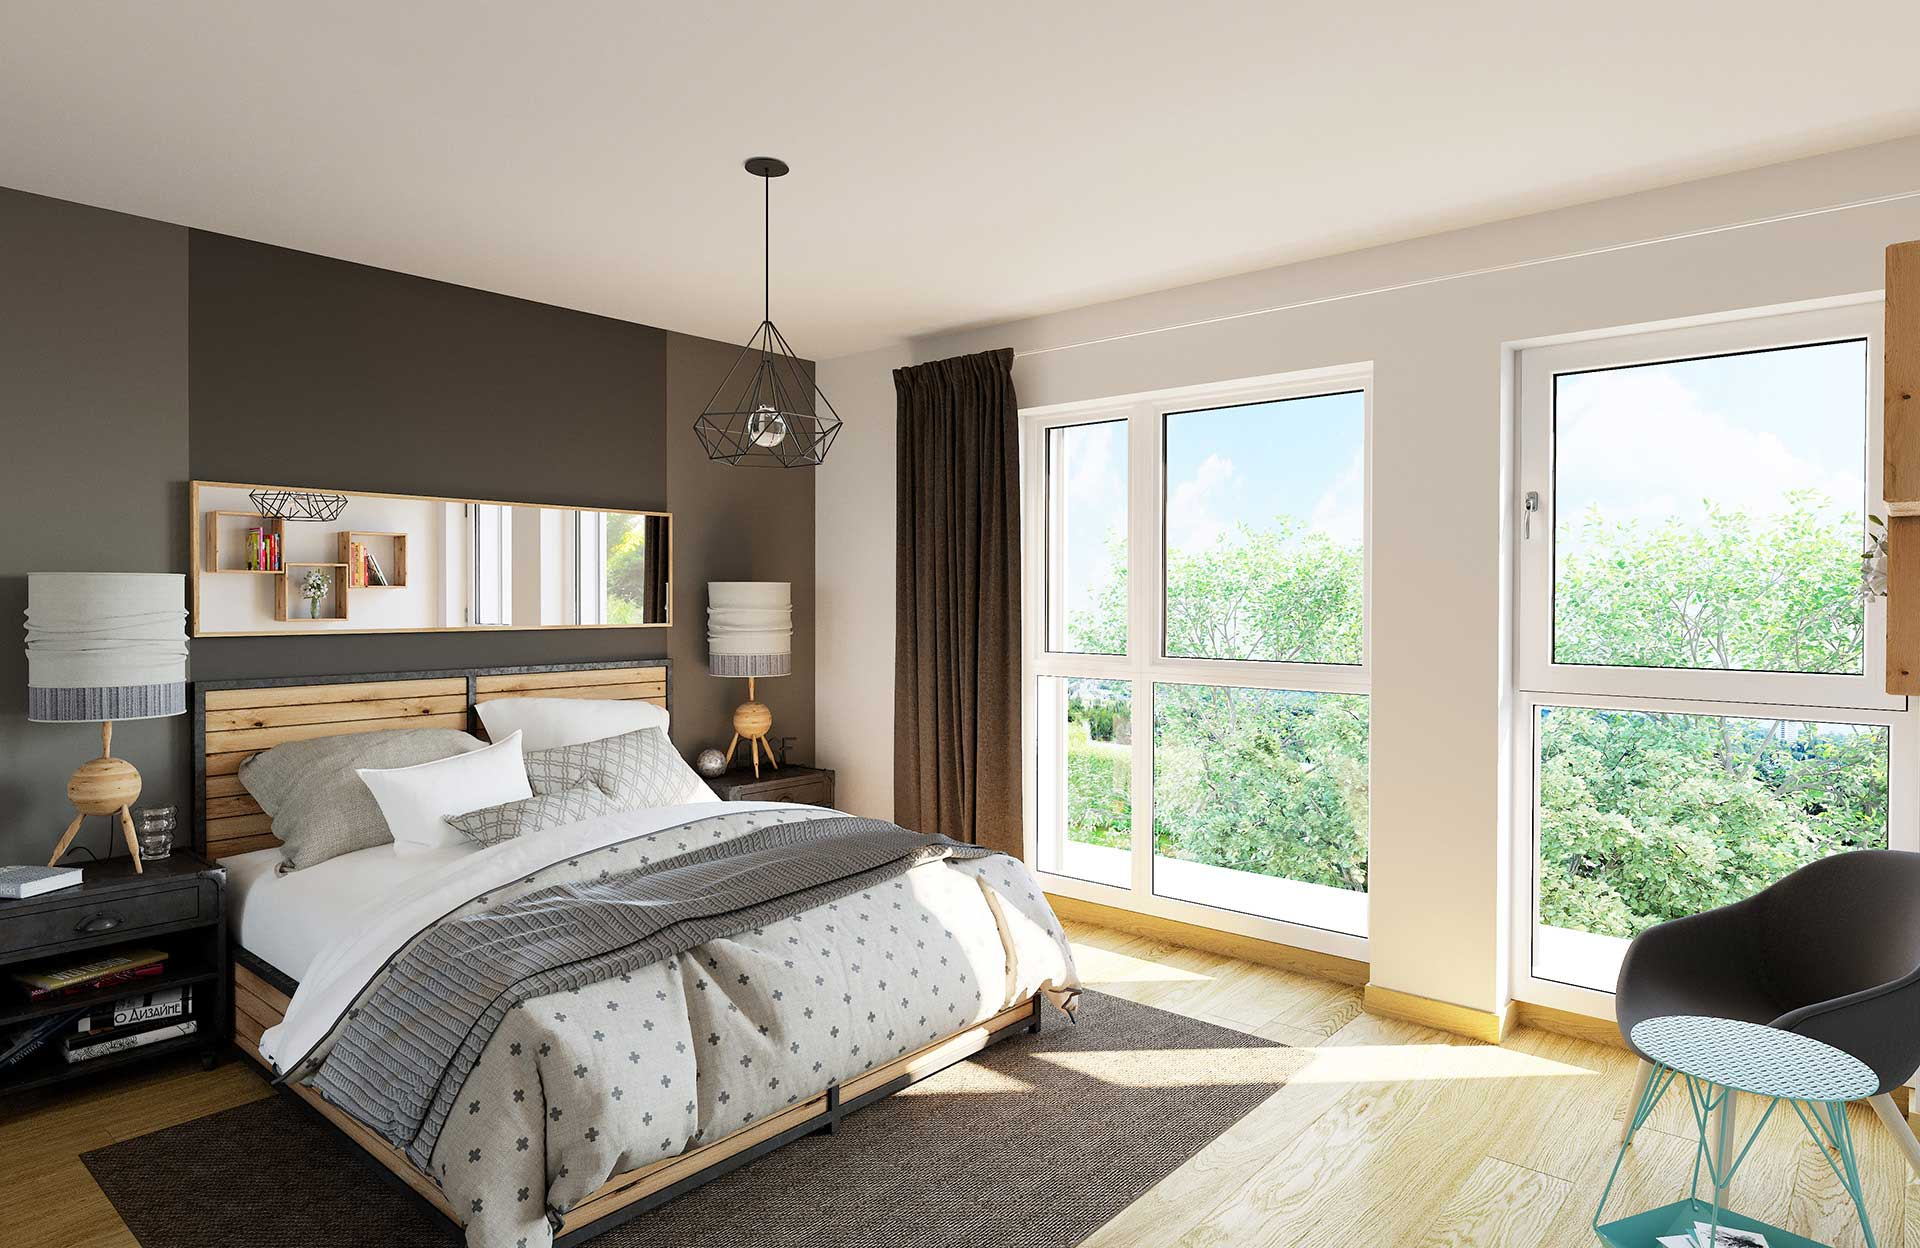 3D Image of a room of a luxurious apartment - Real estate promotion.